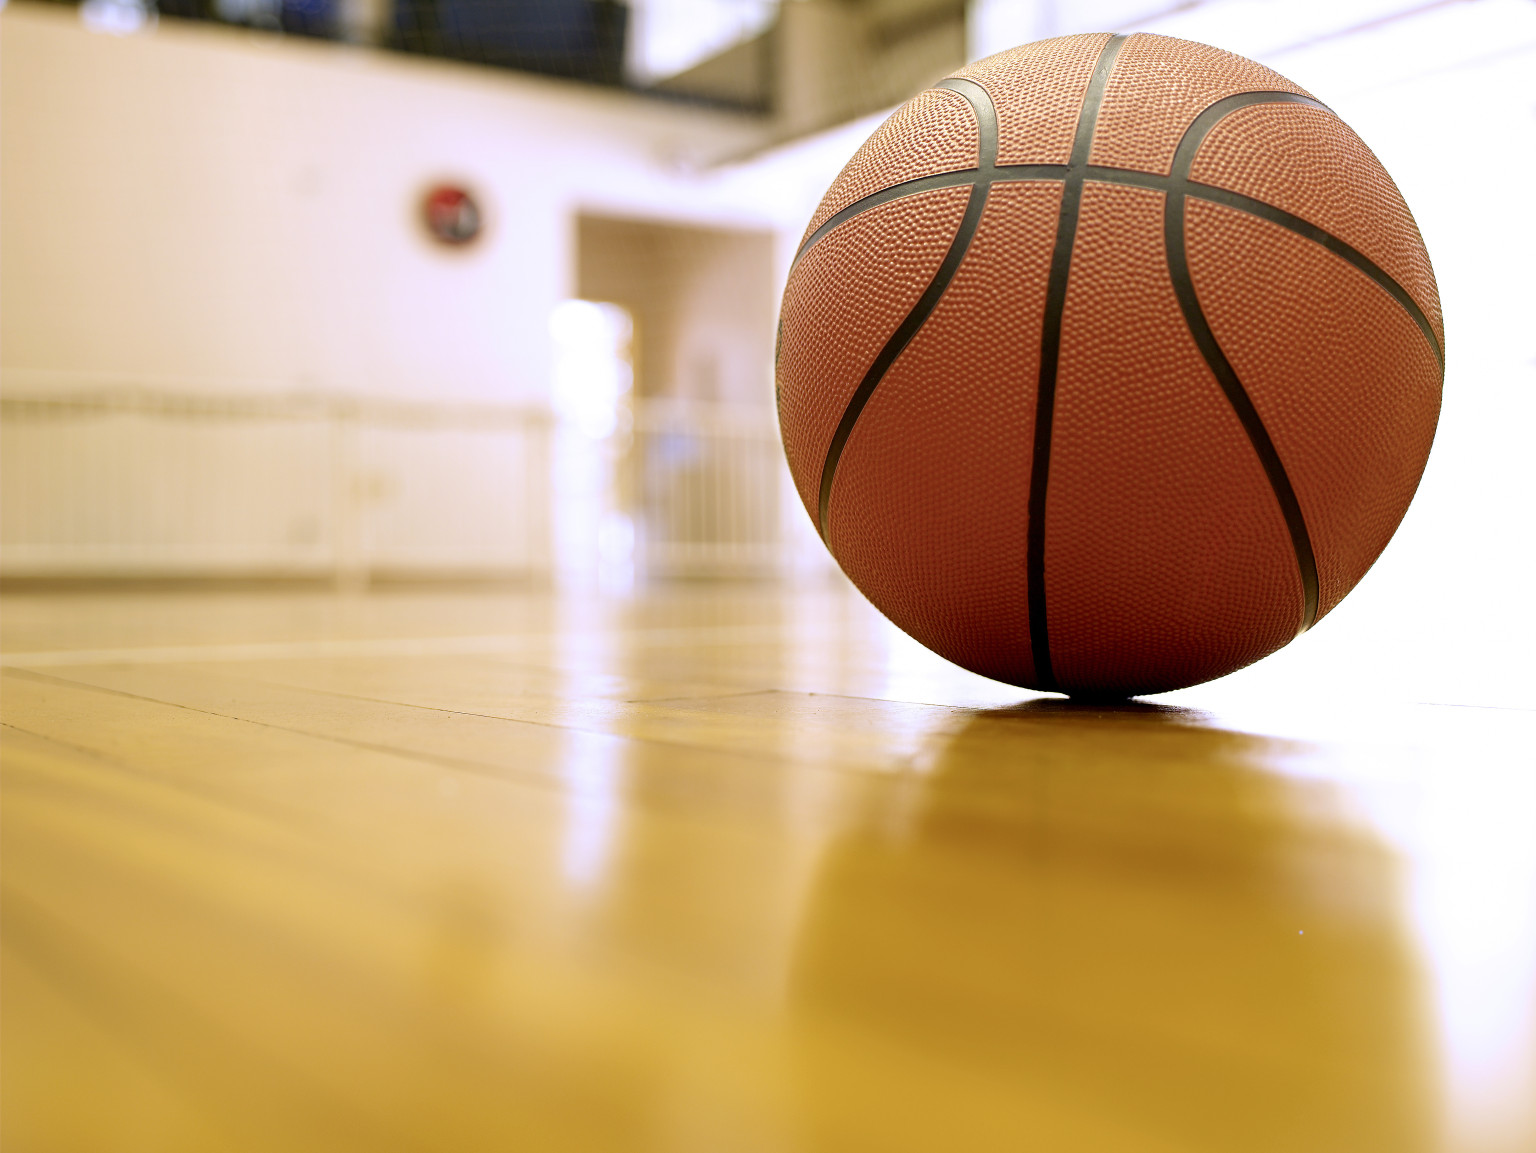 basketball research Free essays from bartleby | since i was a child, i loved watching basketball games i remember when i was around six years old, there was a game on the tv.